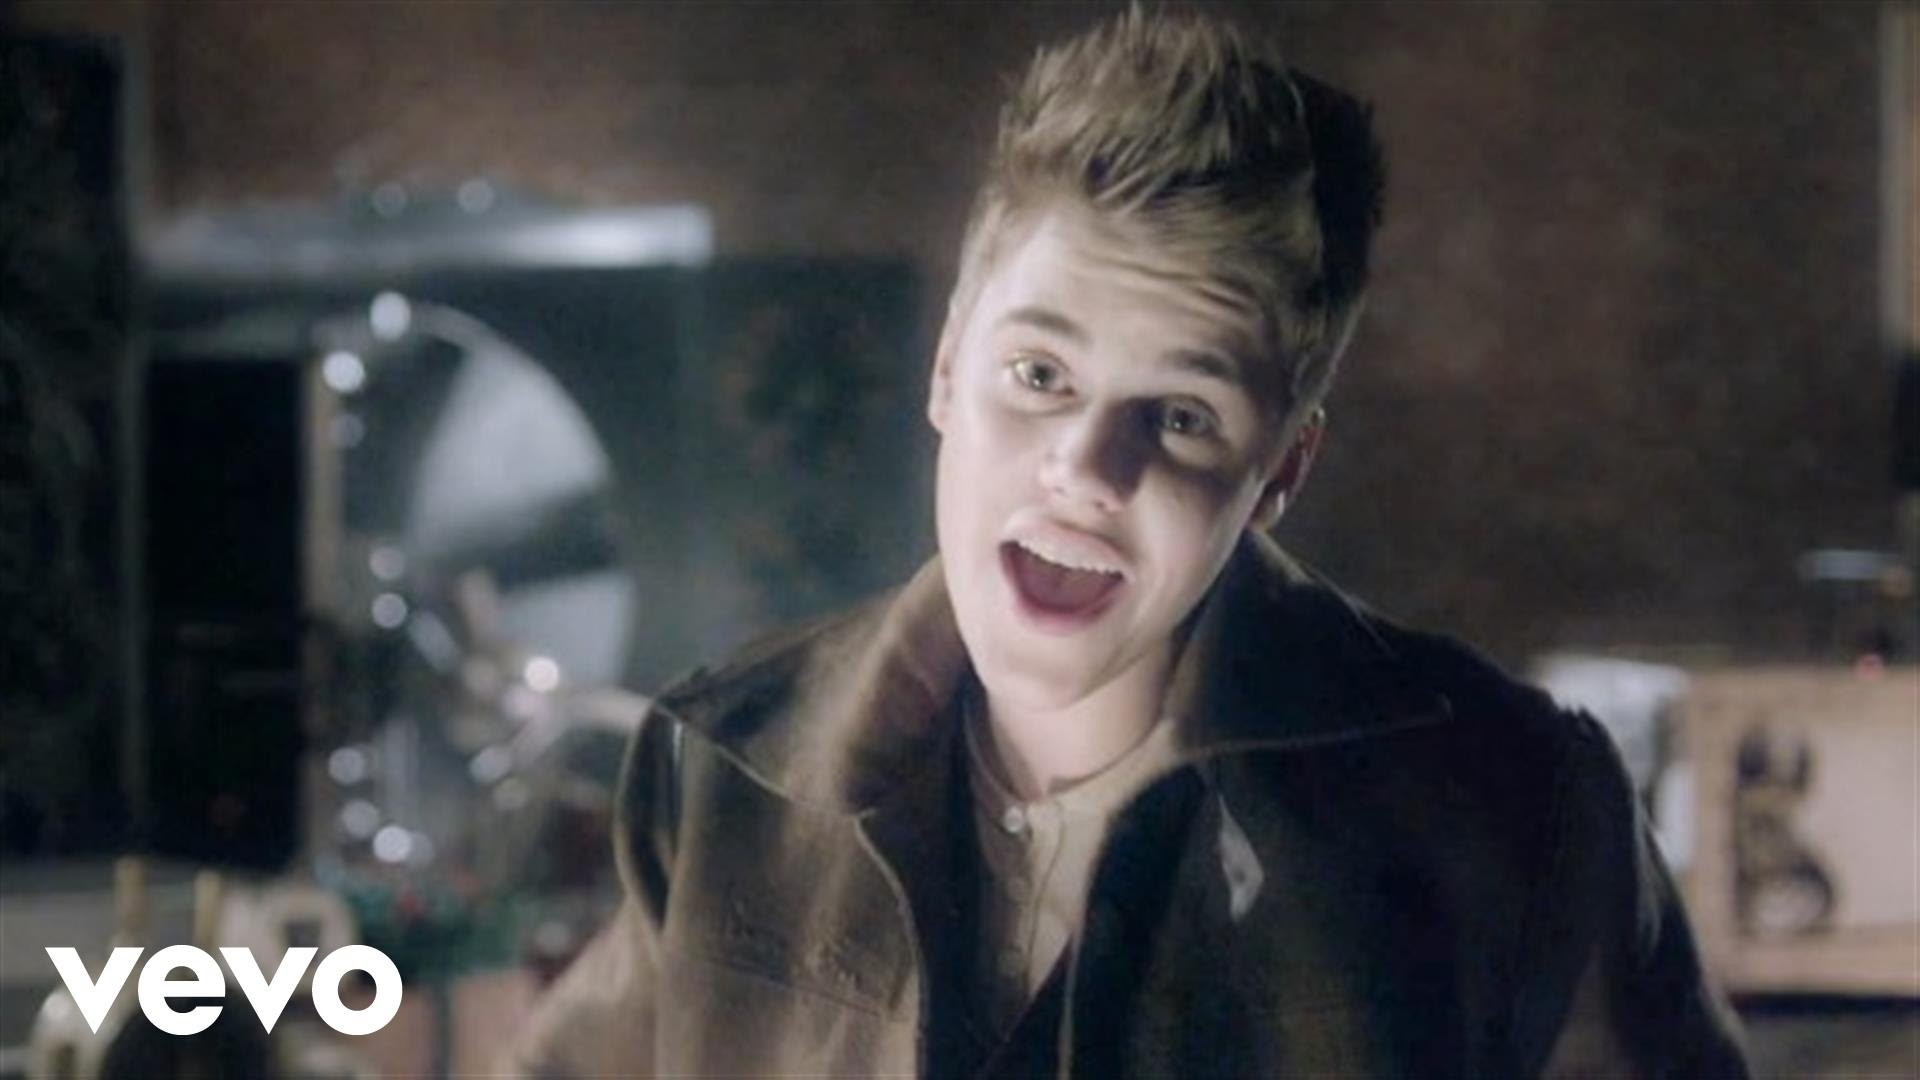 1920x1080 Justin Bieber - Santa Claus Is Coming To Town (Arthur Christmas Version) -  YouTube